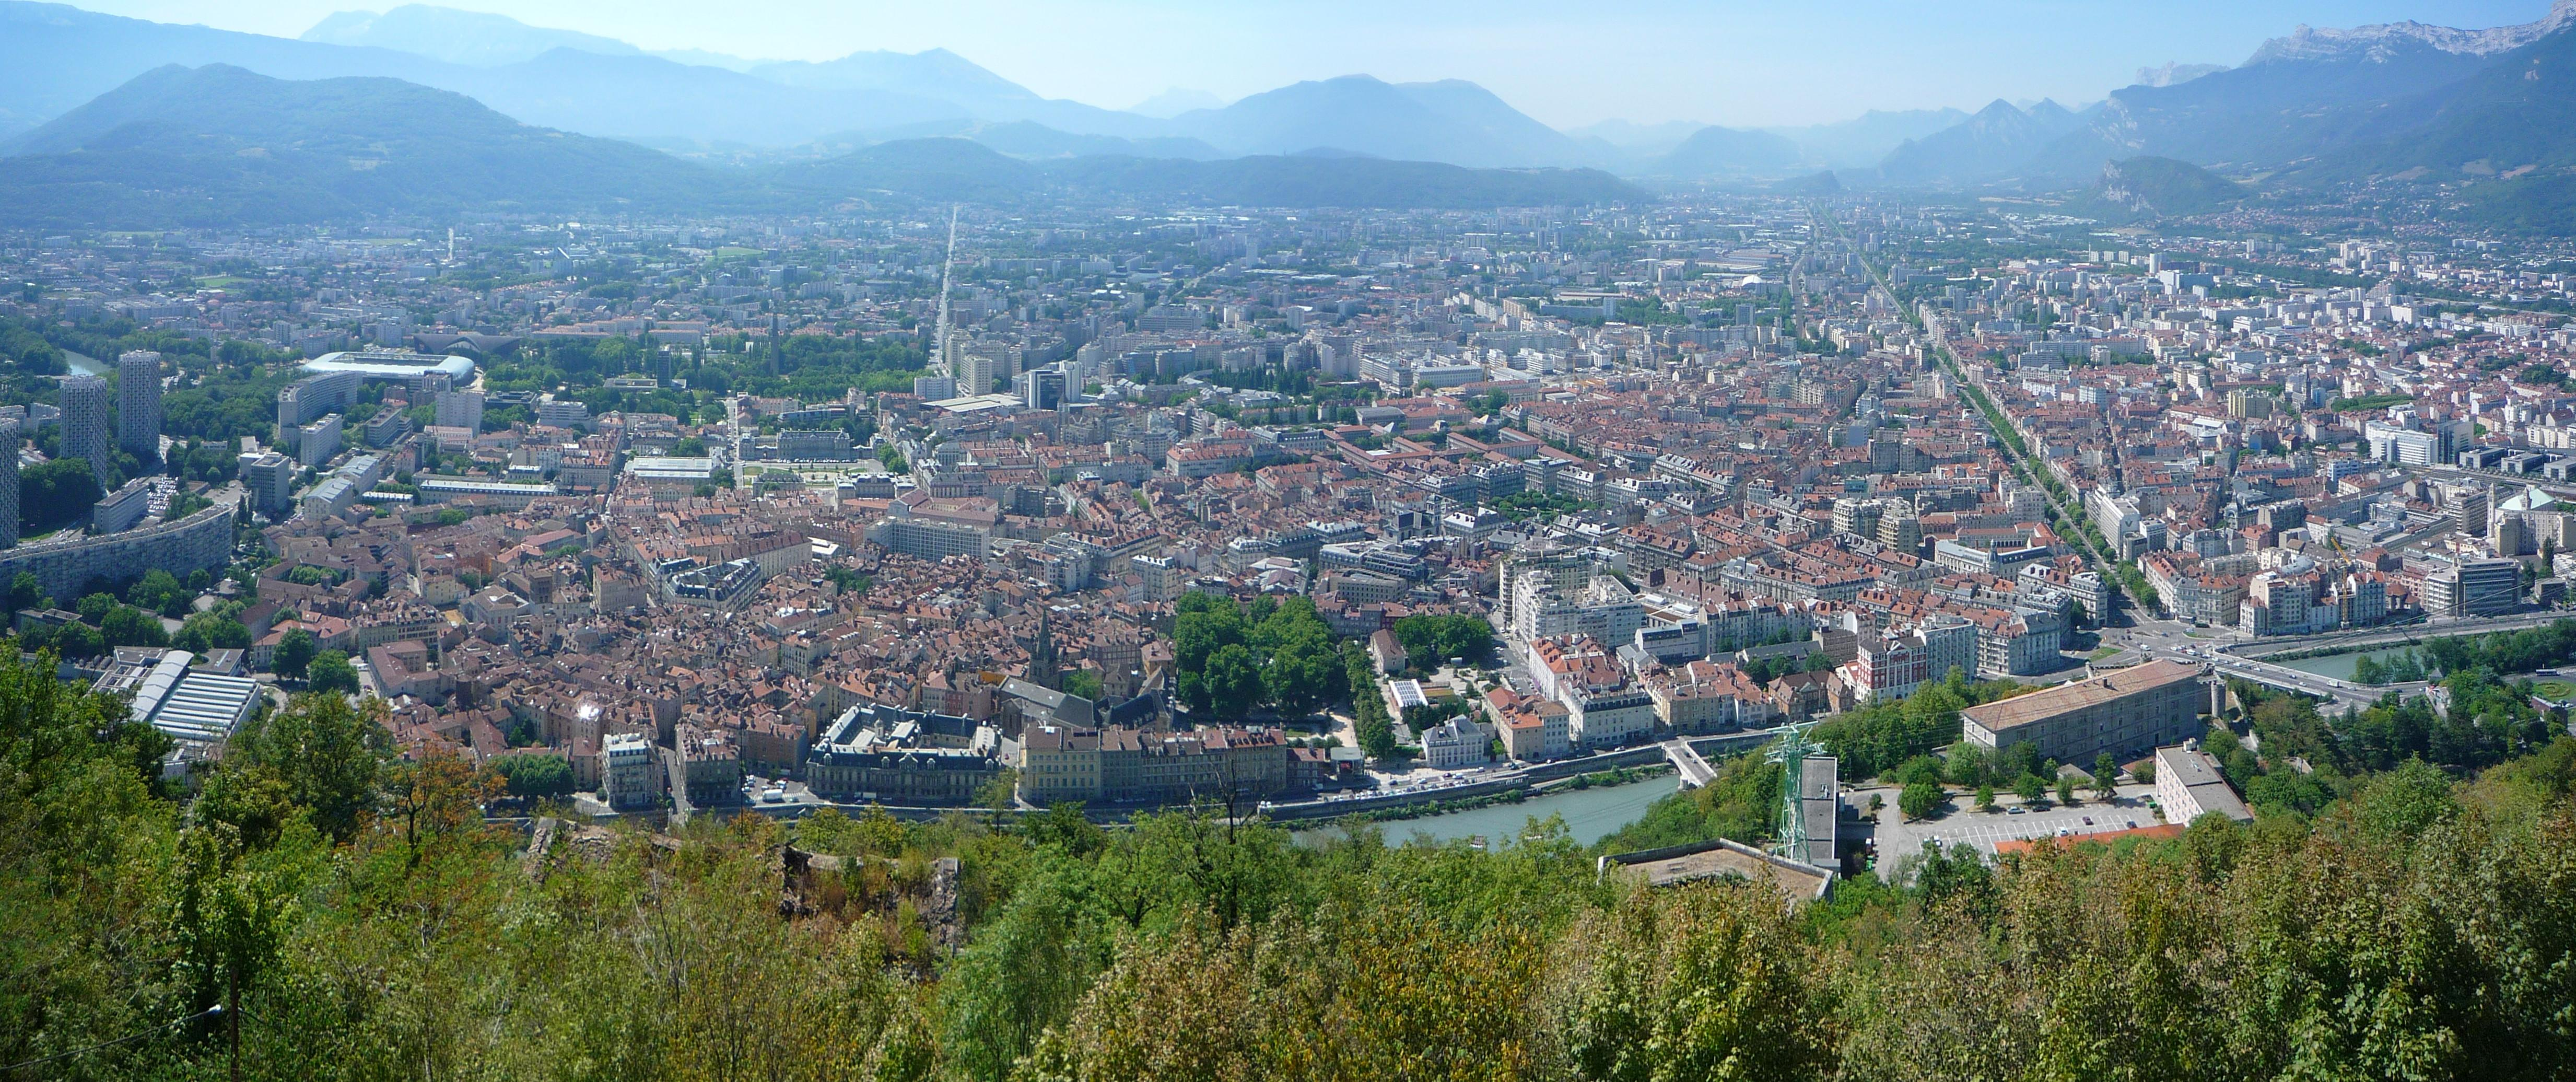 http://fr.academic.ru/pictures/frwiki/80/Pano_Grenoble.JPG